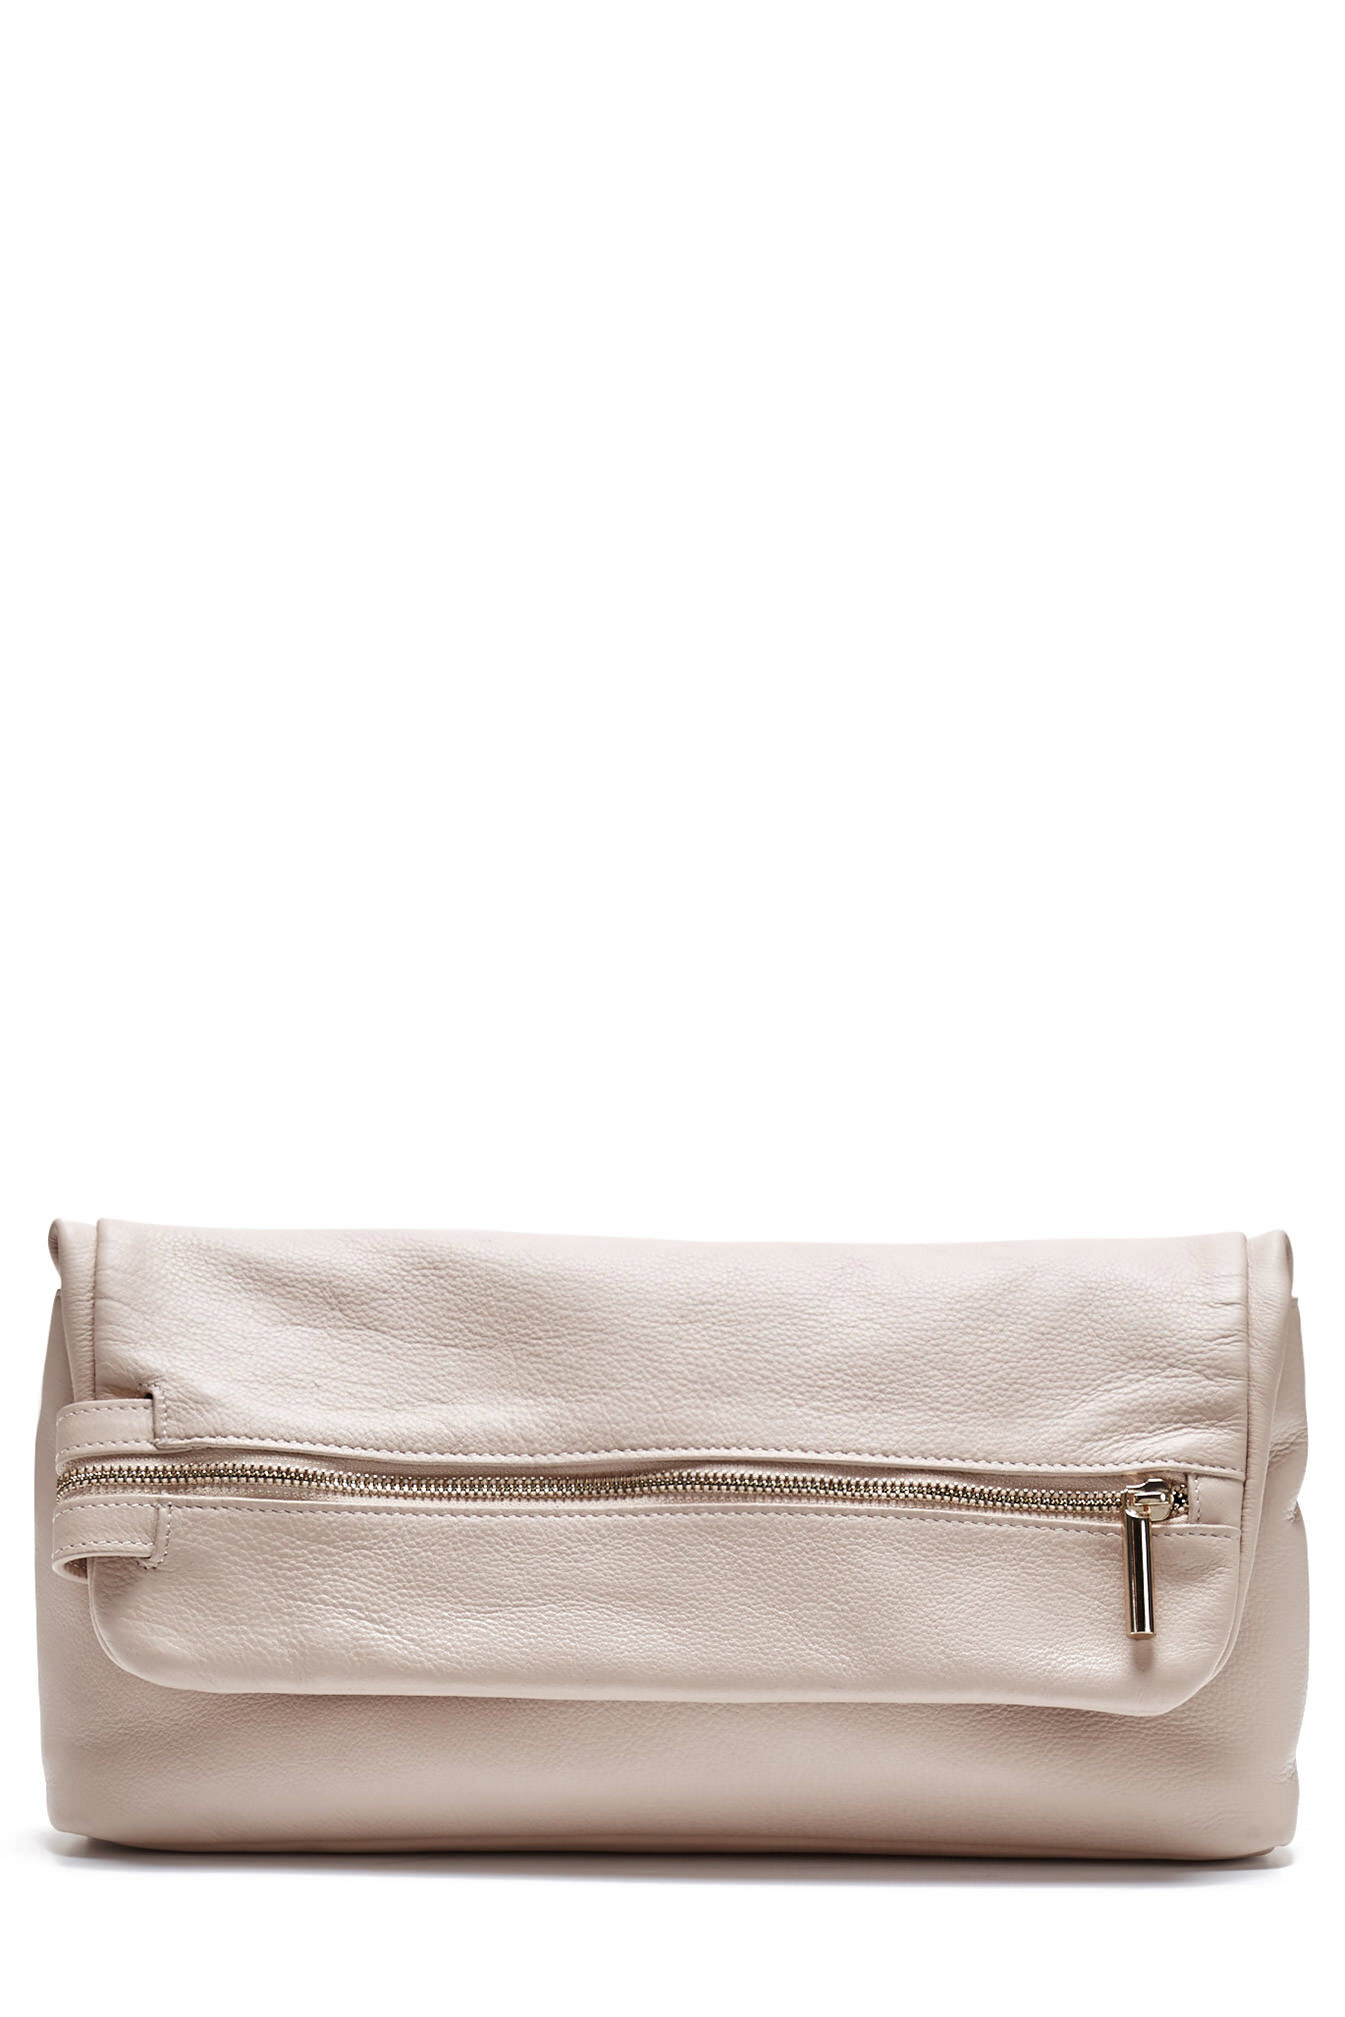 saba female frankie oversized clutch nudeonesize